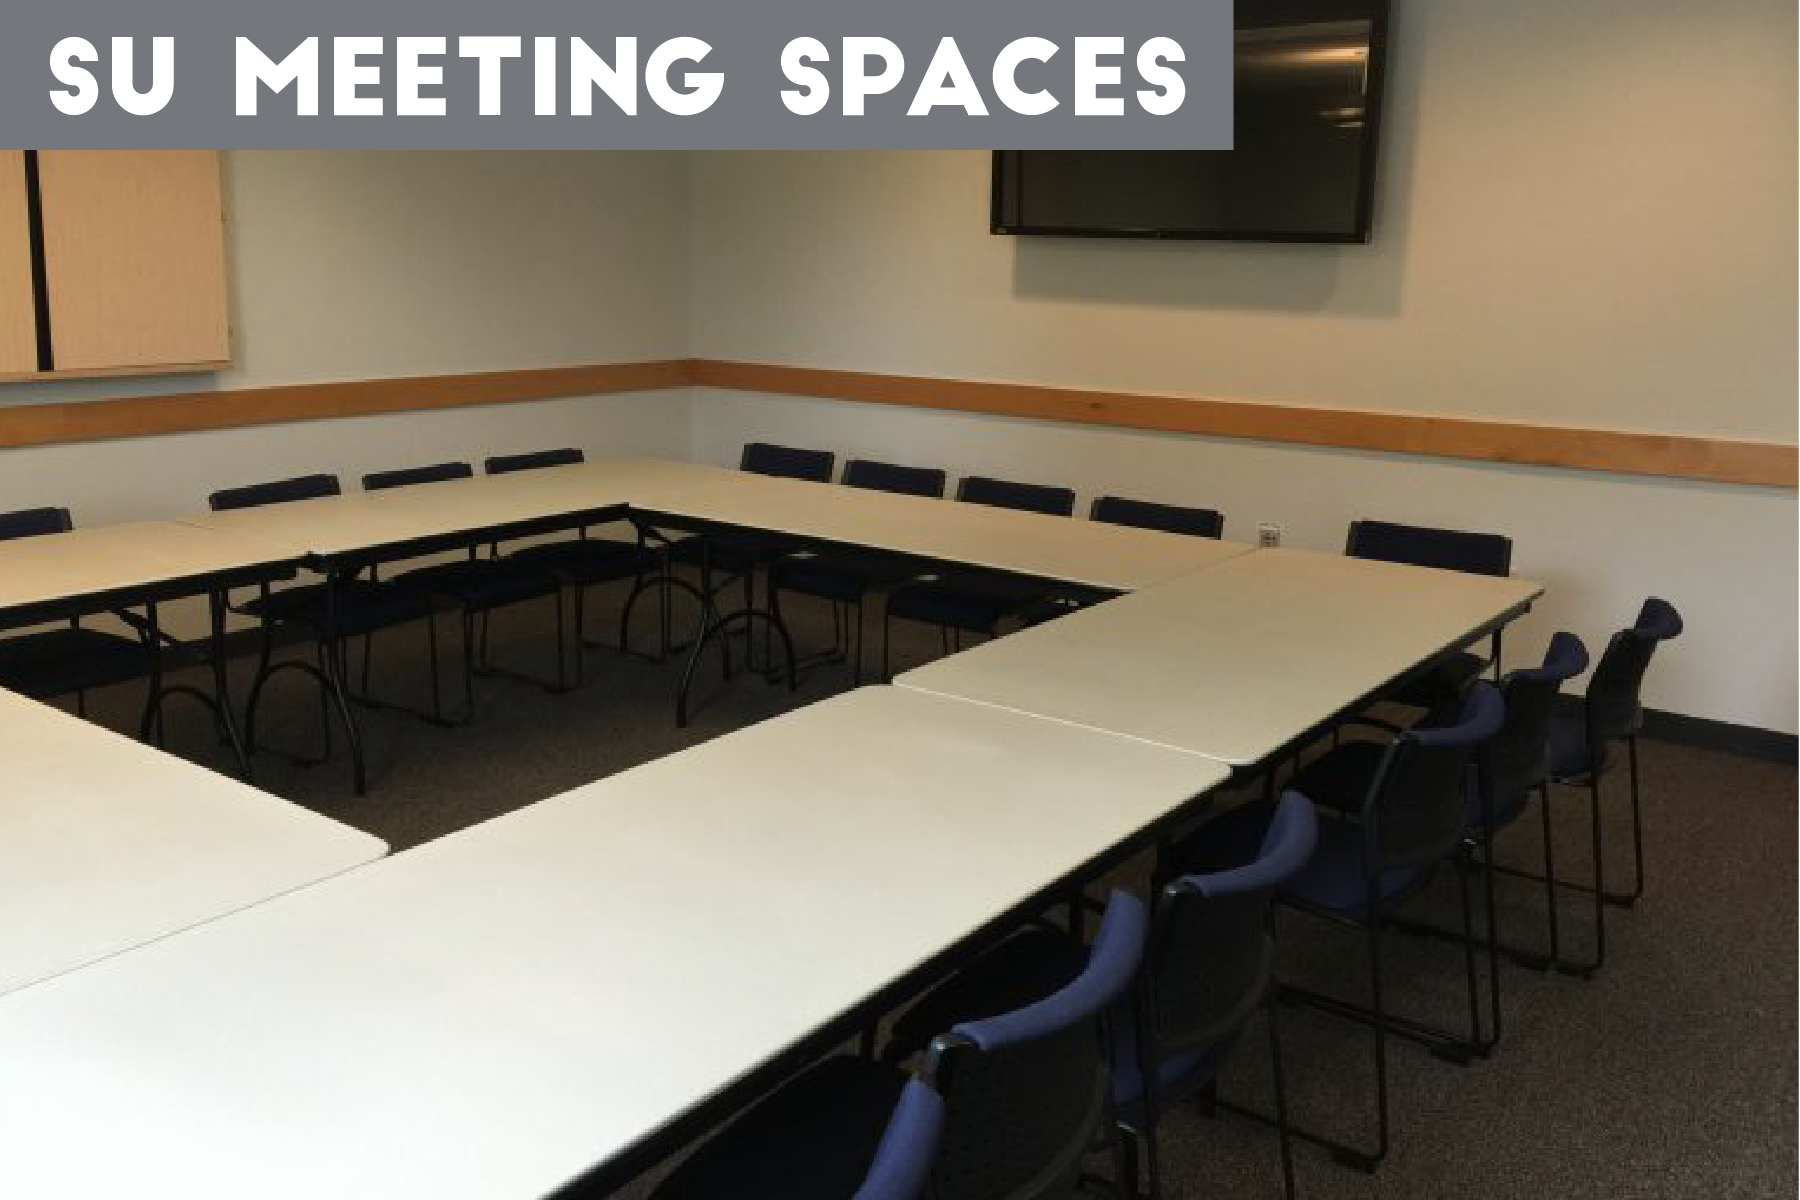 Student Union Meeting Spaces